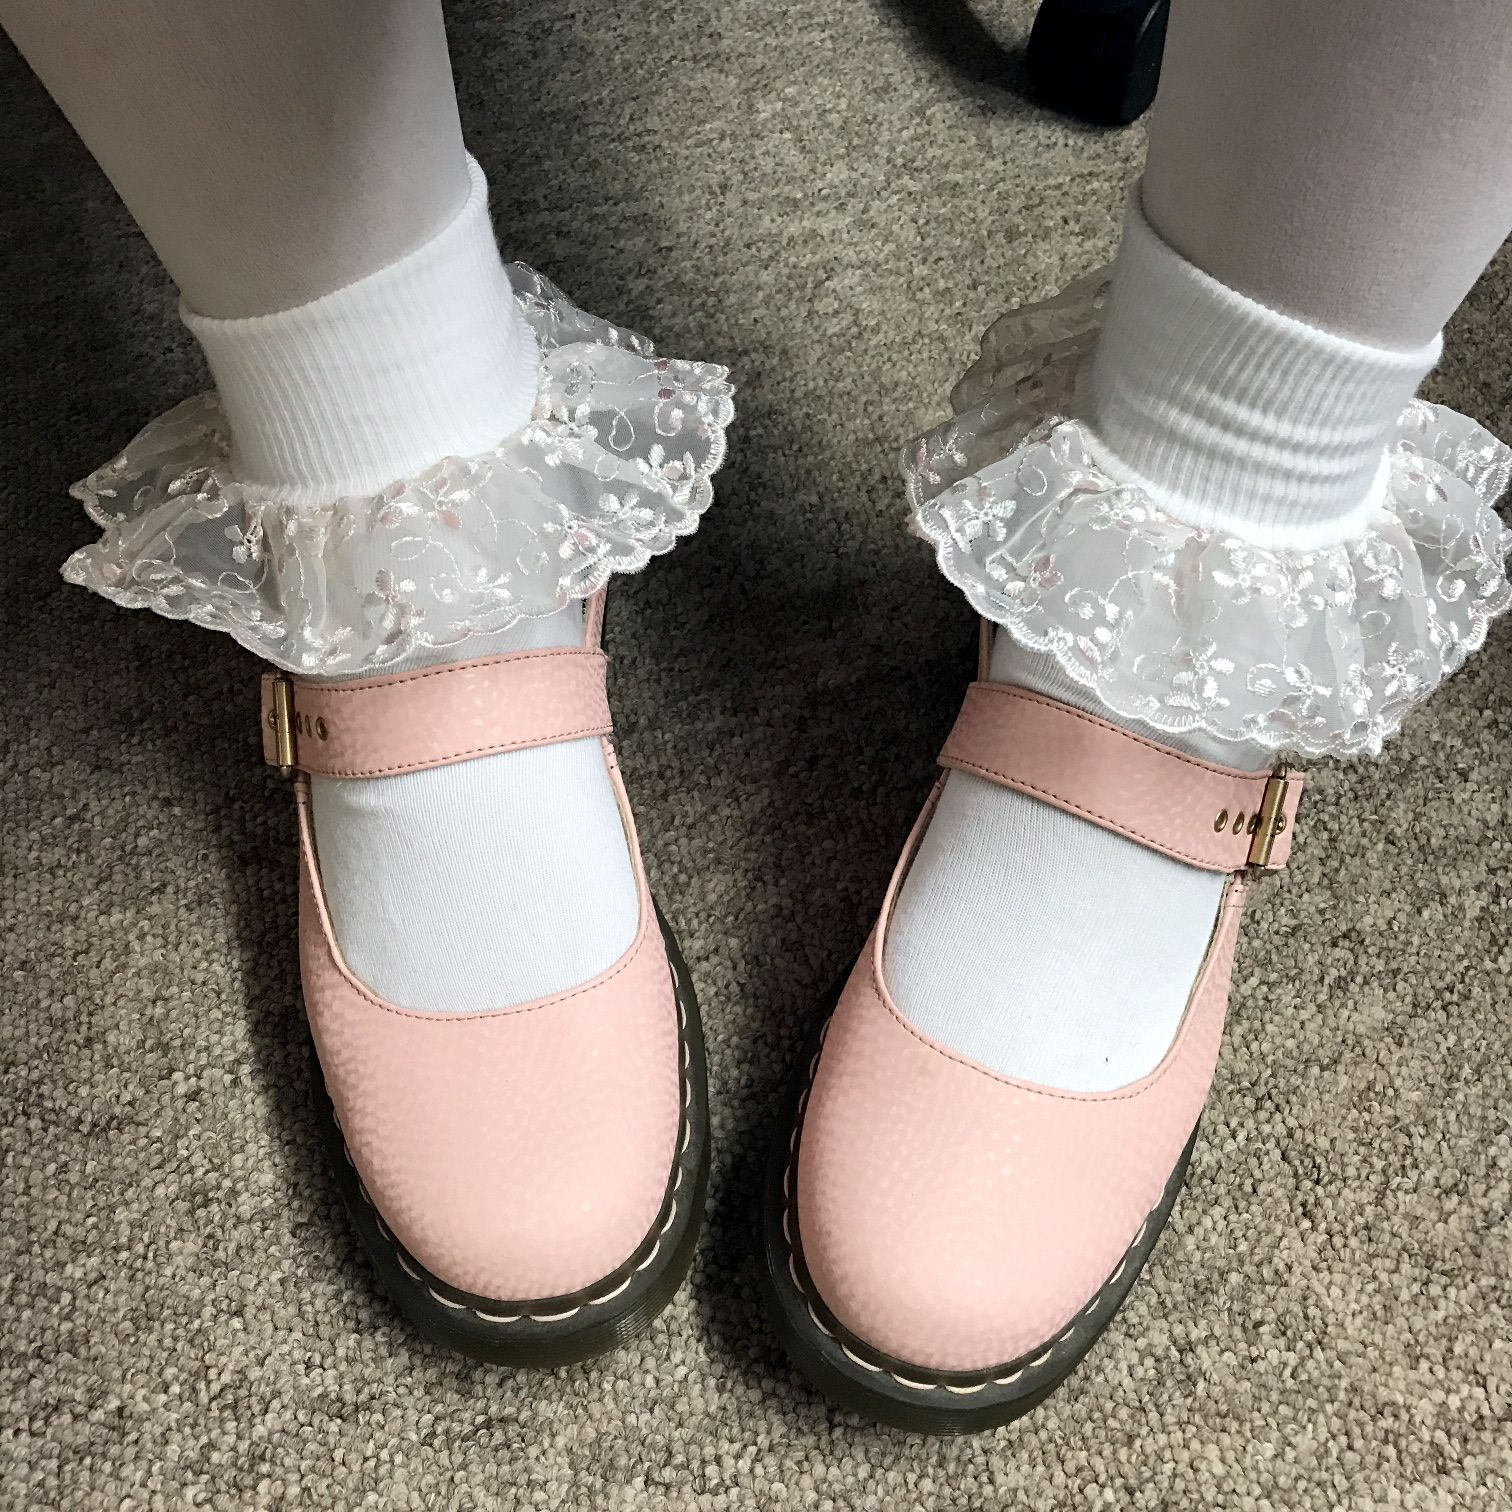 My Pink Dm Mary Janes With Frilly Socks Socks And Heels Sock Shoes Frilly Socks